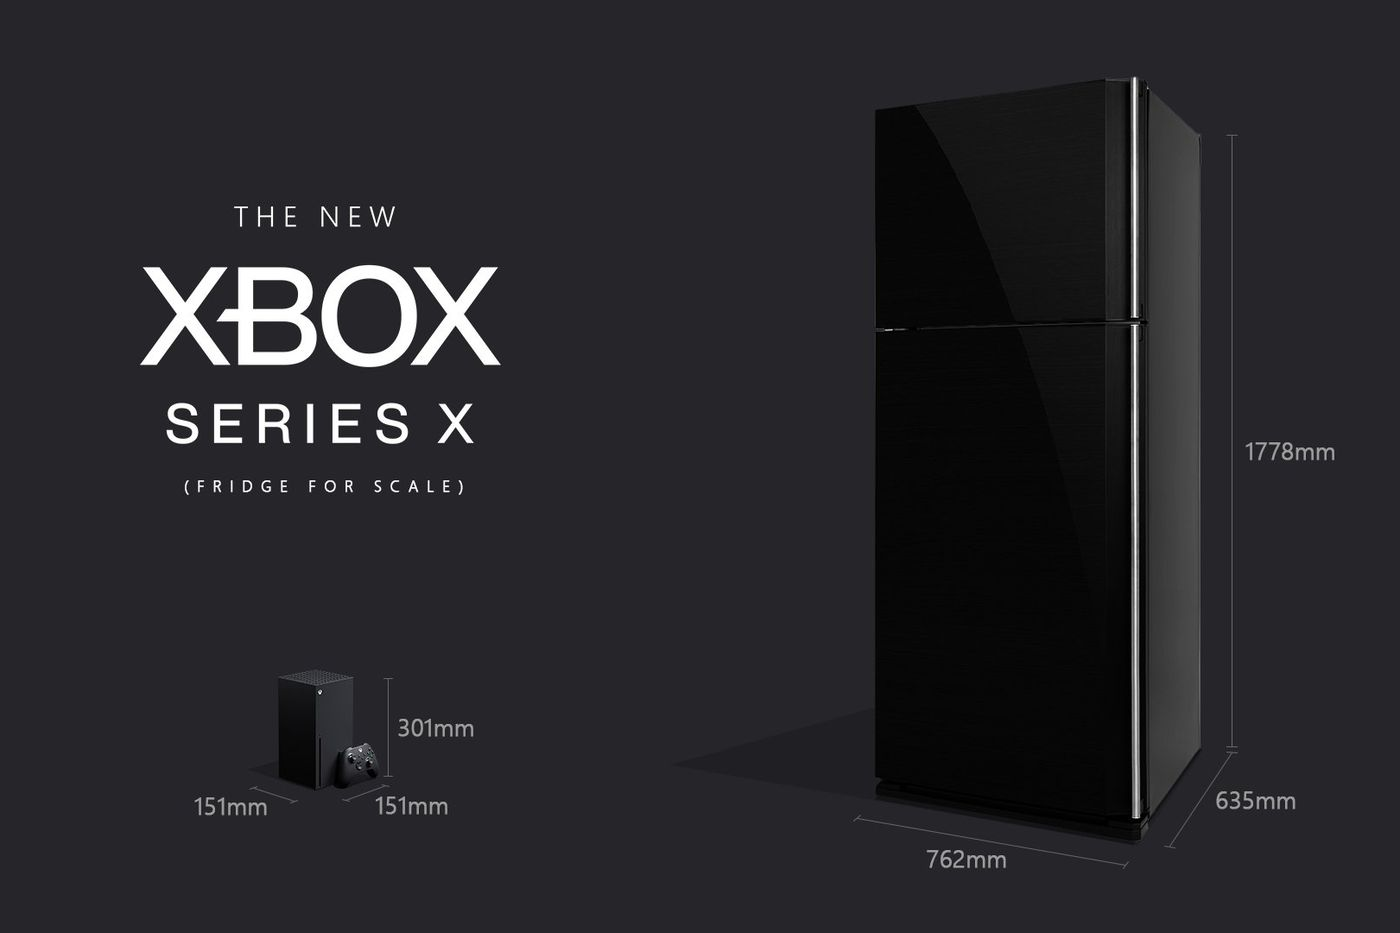 Microsoft Assures Xbox Fans That The Series X Is In Fact Smaller Than A Fridge The Verge